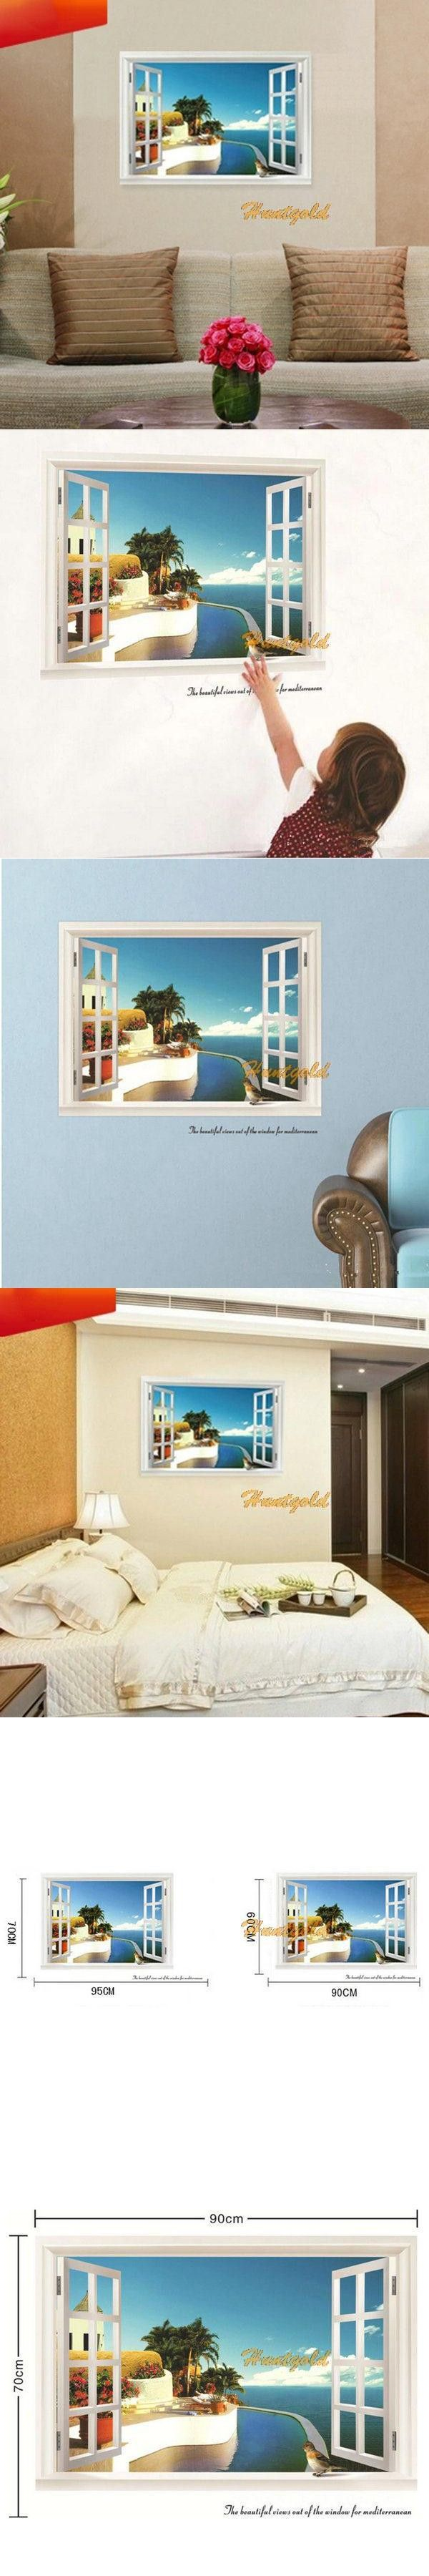 best 25 mediterranean style wall stickers ideas only on pinterest fashion mediterranean style window beach wall sticker home decor decals vinyl art